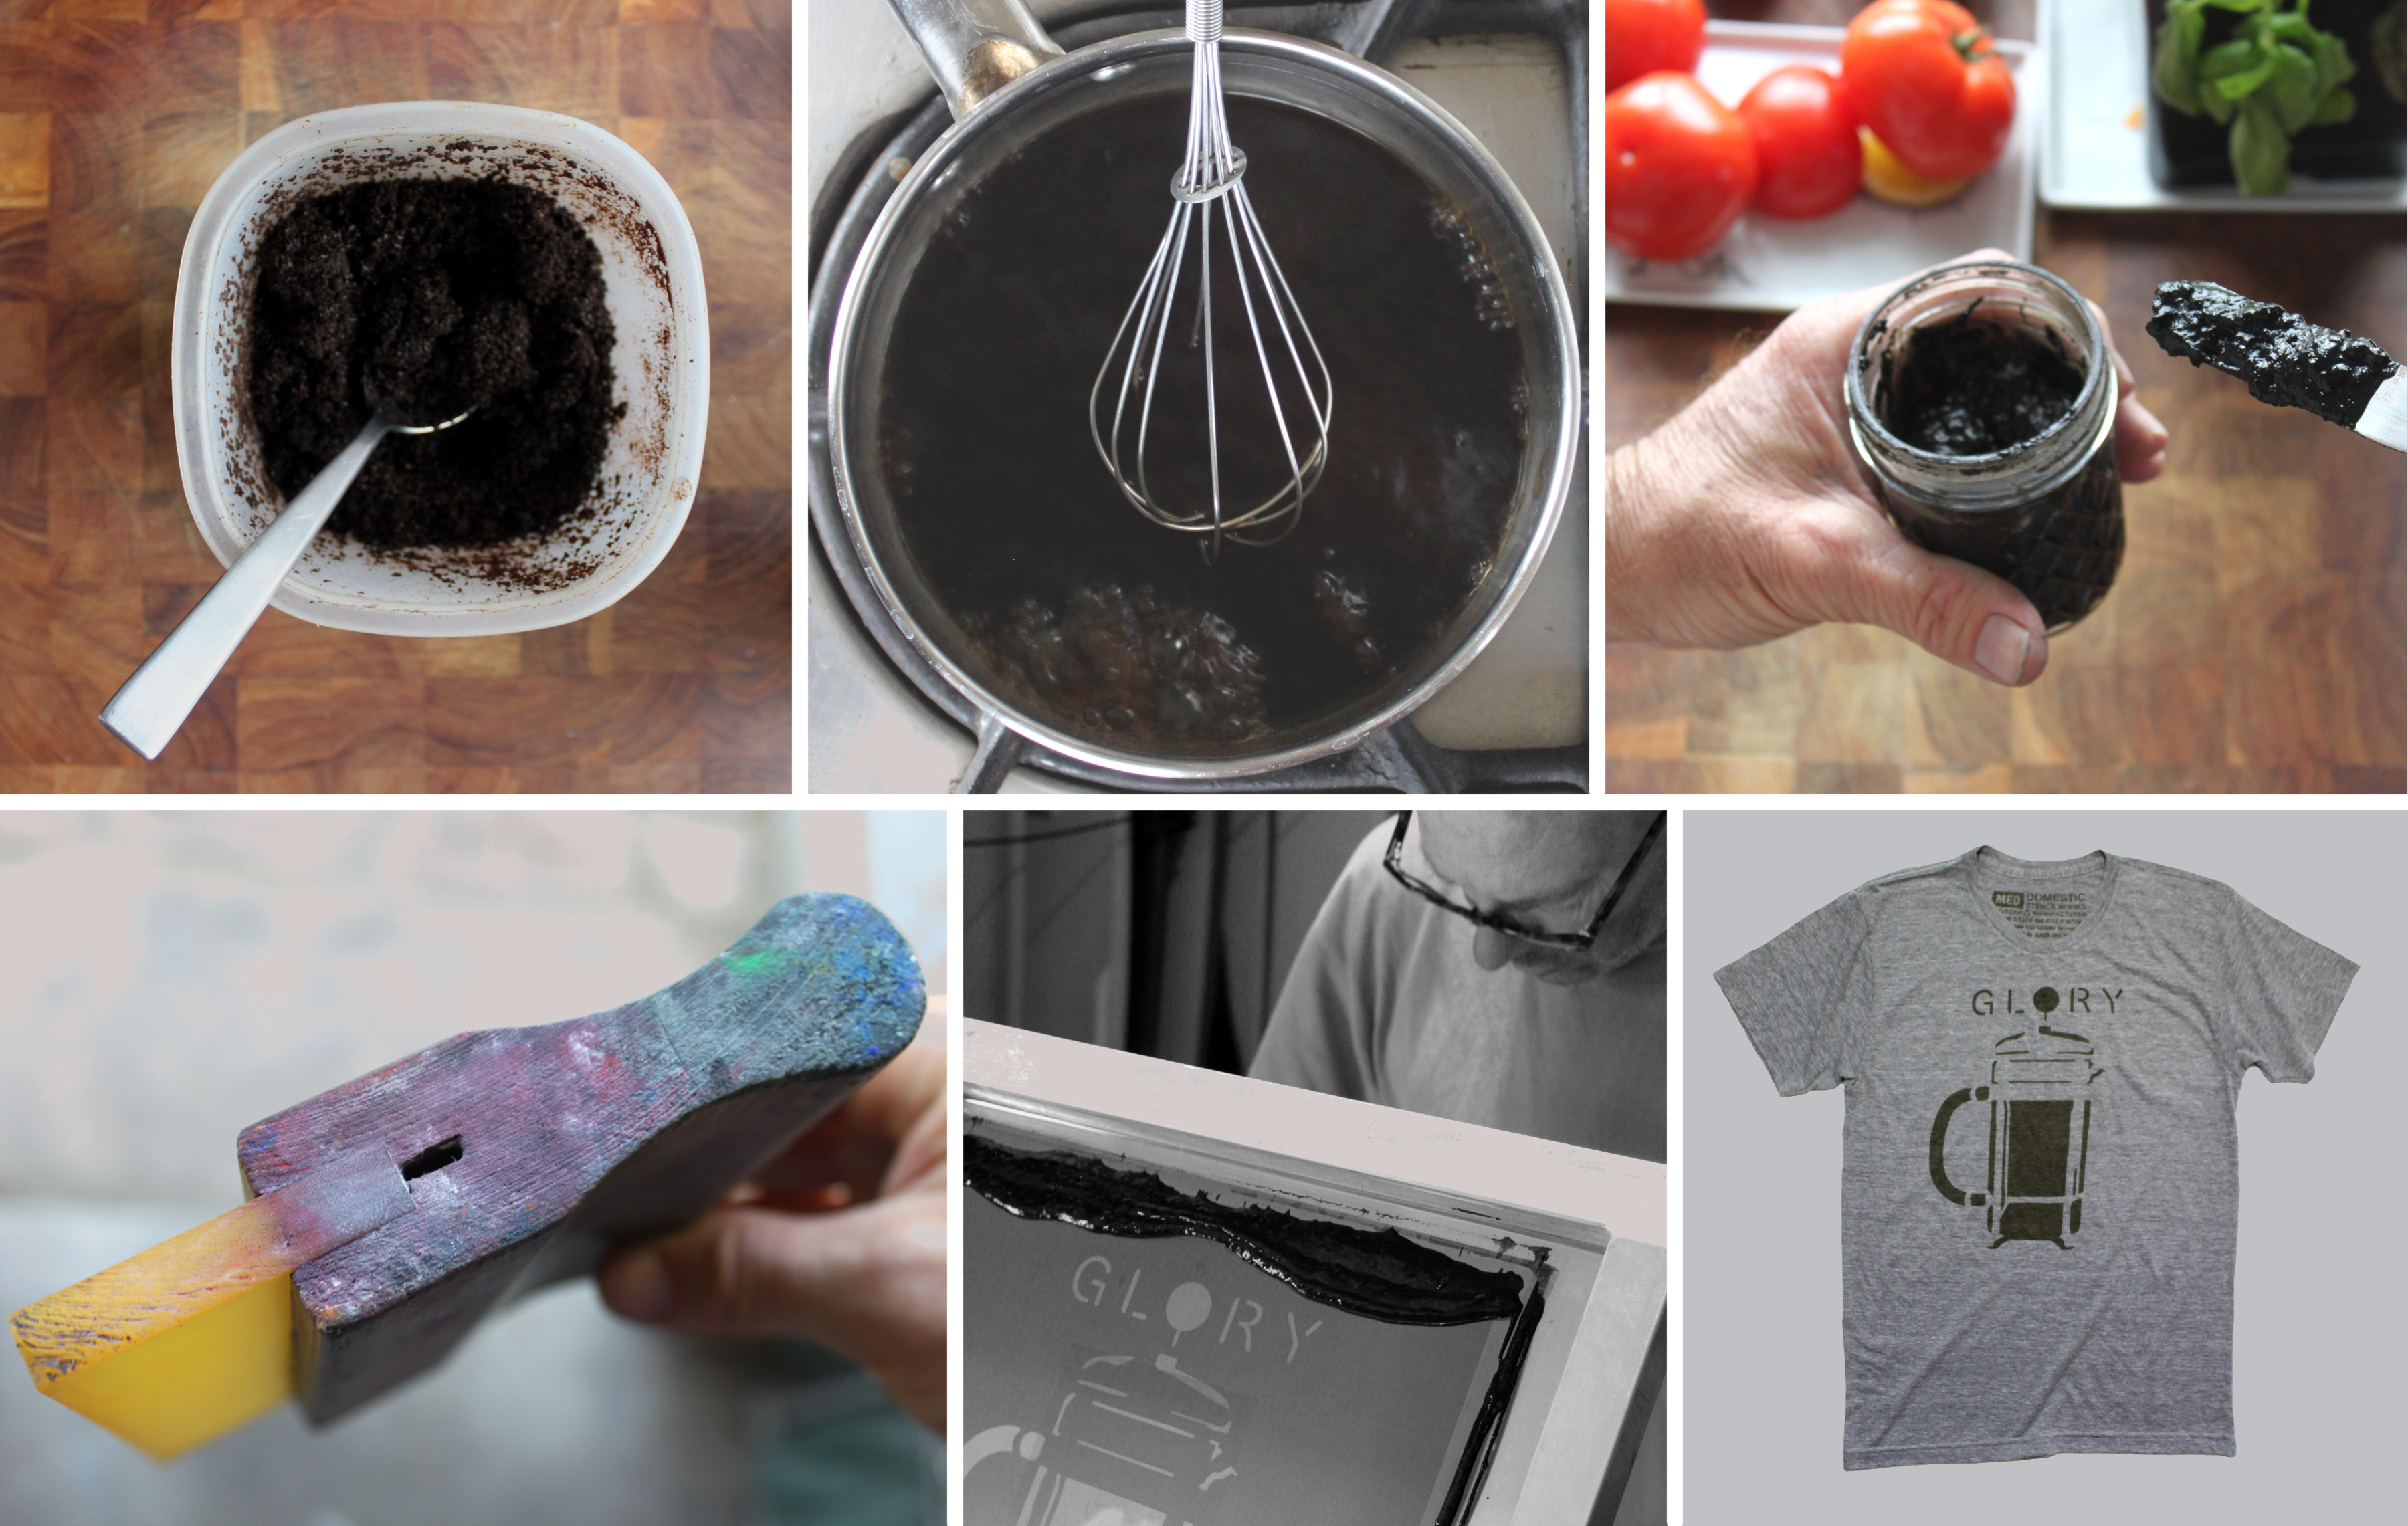 Domestic prints - prints using spent coffee grounds - amazing upcycling idea.